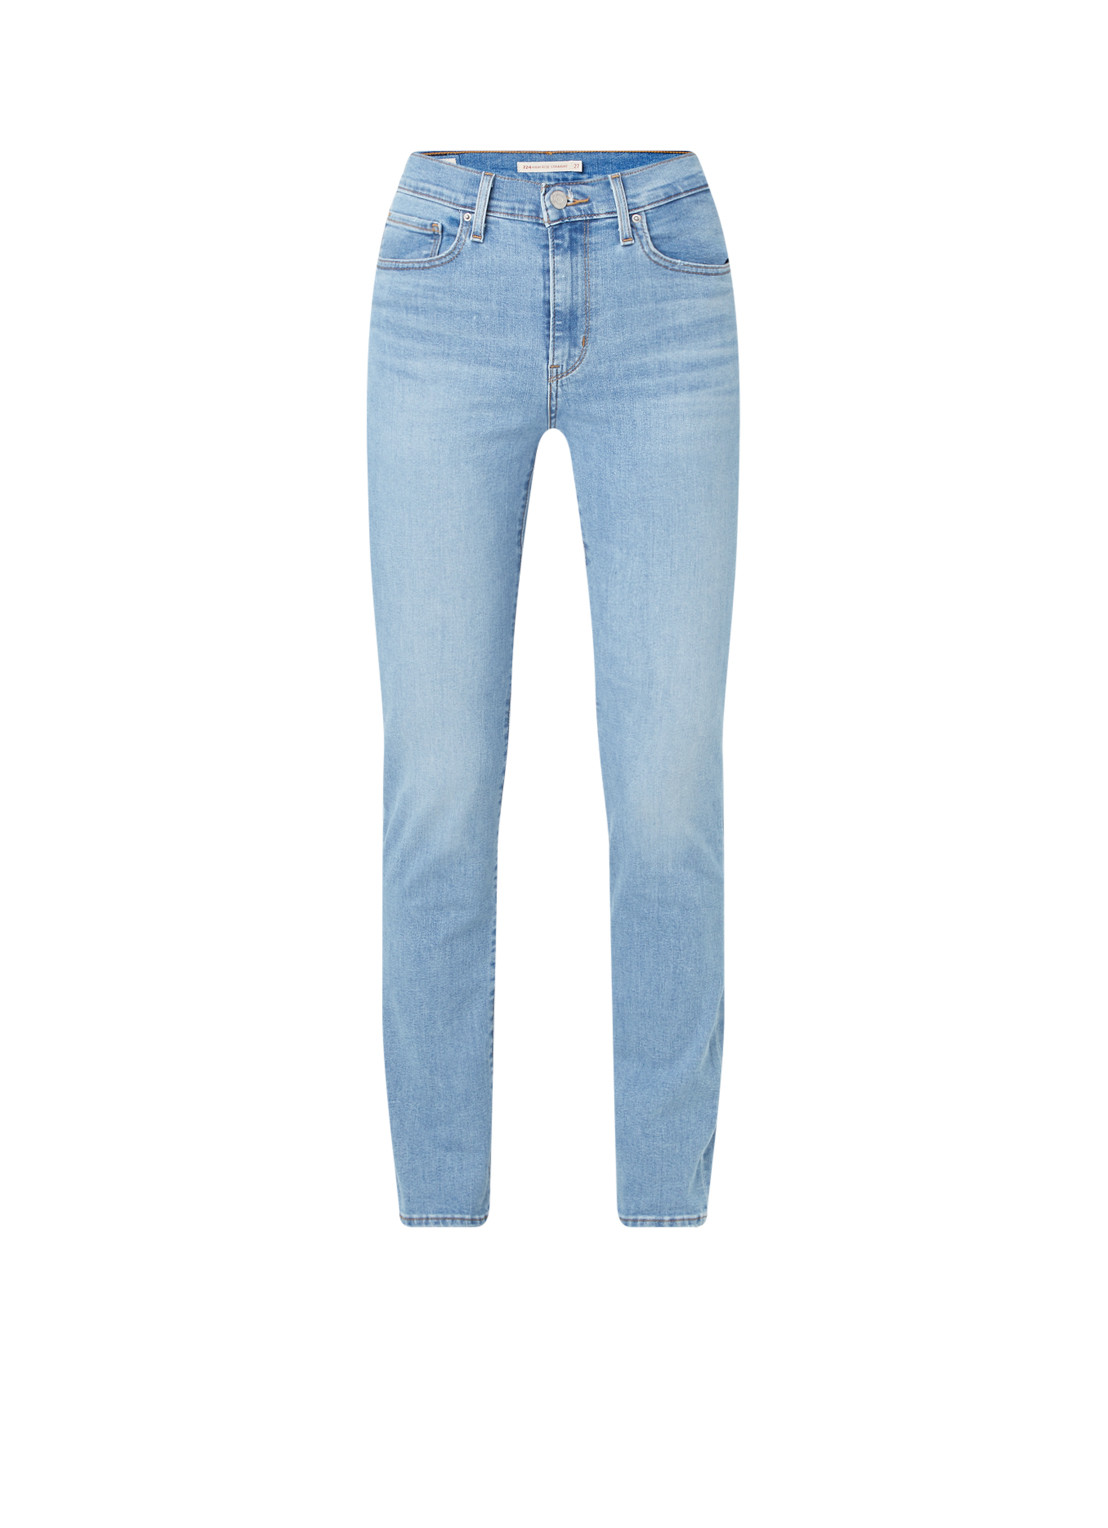 724 high waist slim fit jeans met stretch